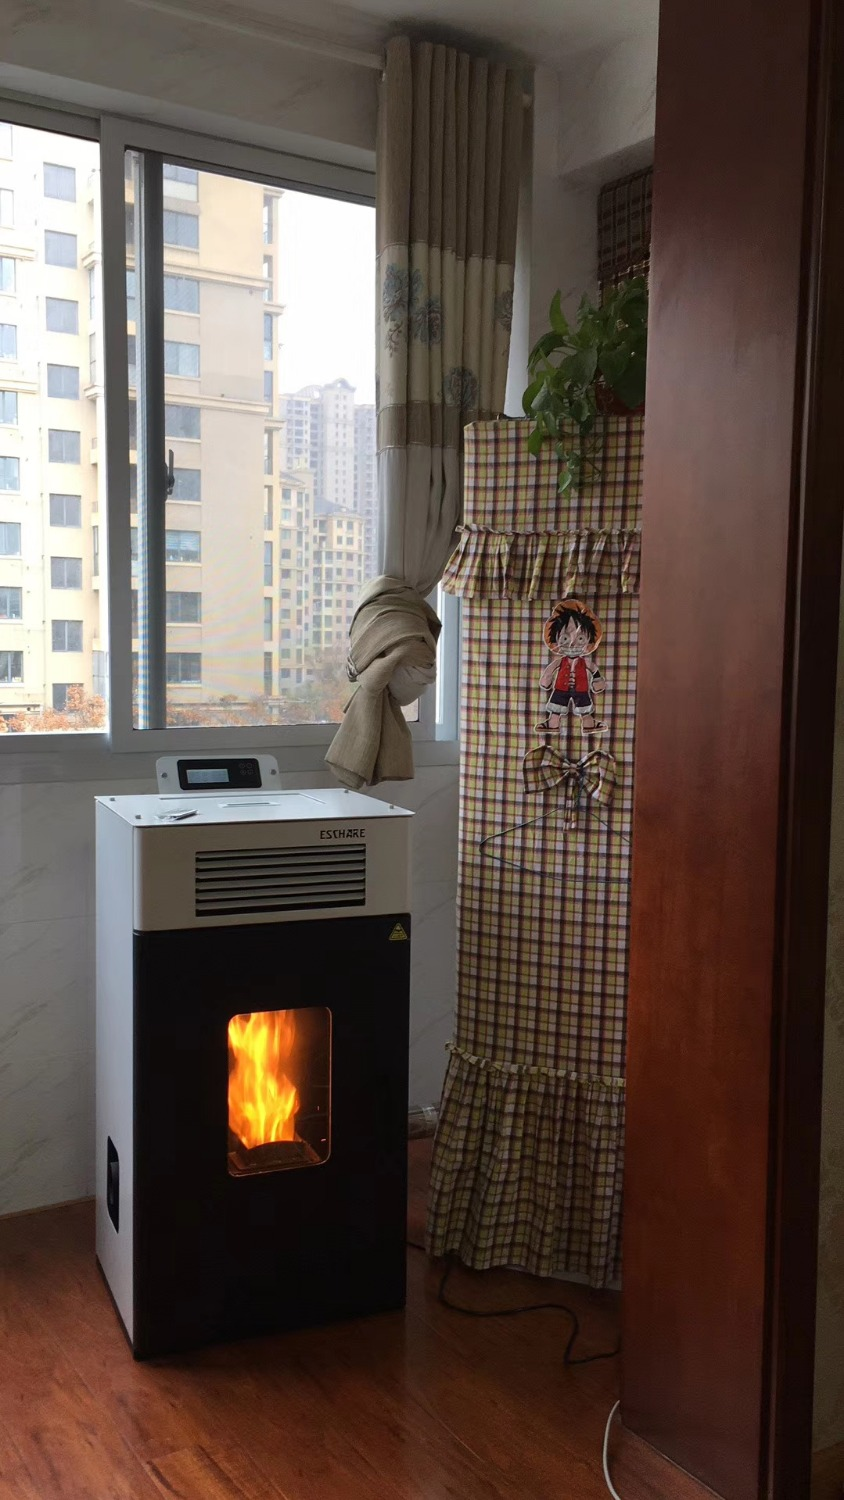 Pellet Kw Us 1900 Family Use Mini Biomass Hydrologic Cycle Pellet Stove 6 Kw 30 Kw In Fireplaces From Home Improvement On Aliexpress Alibaba Group